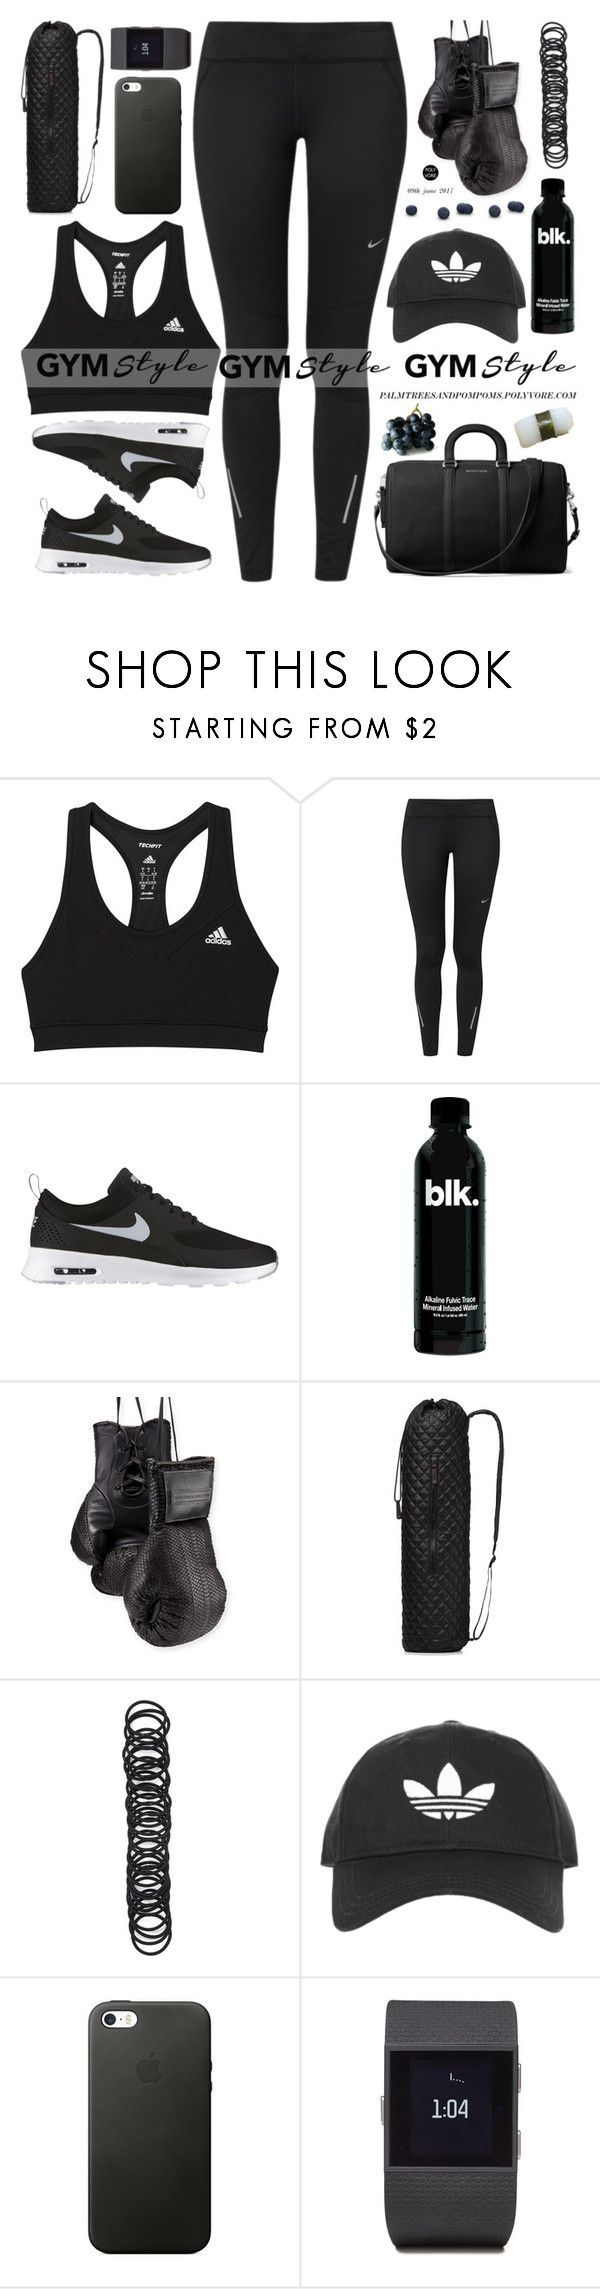 Gym Essentials by palmtreesandpompoms on Polyvore featuring NIKE, adidas, Fitbit, MICHAEL Michael Kors, M Z Wallace, Topshop, Forever 21, Elisabeth Weinstock and Jura